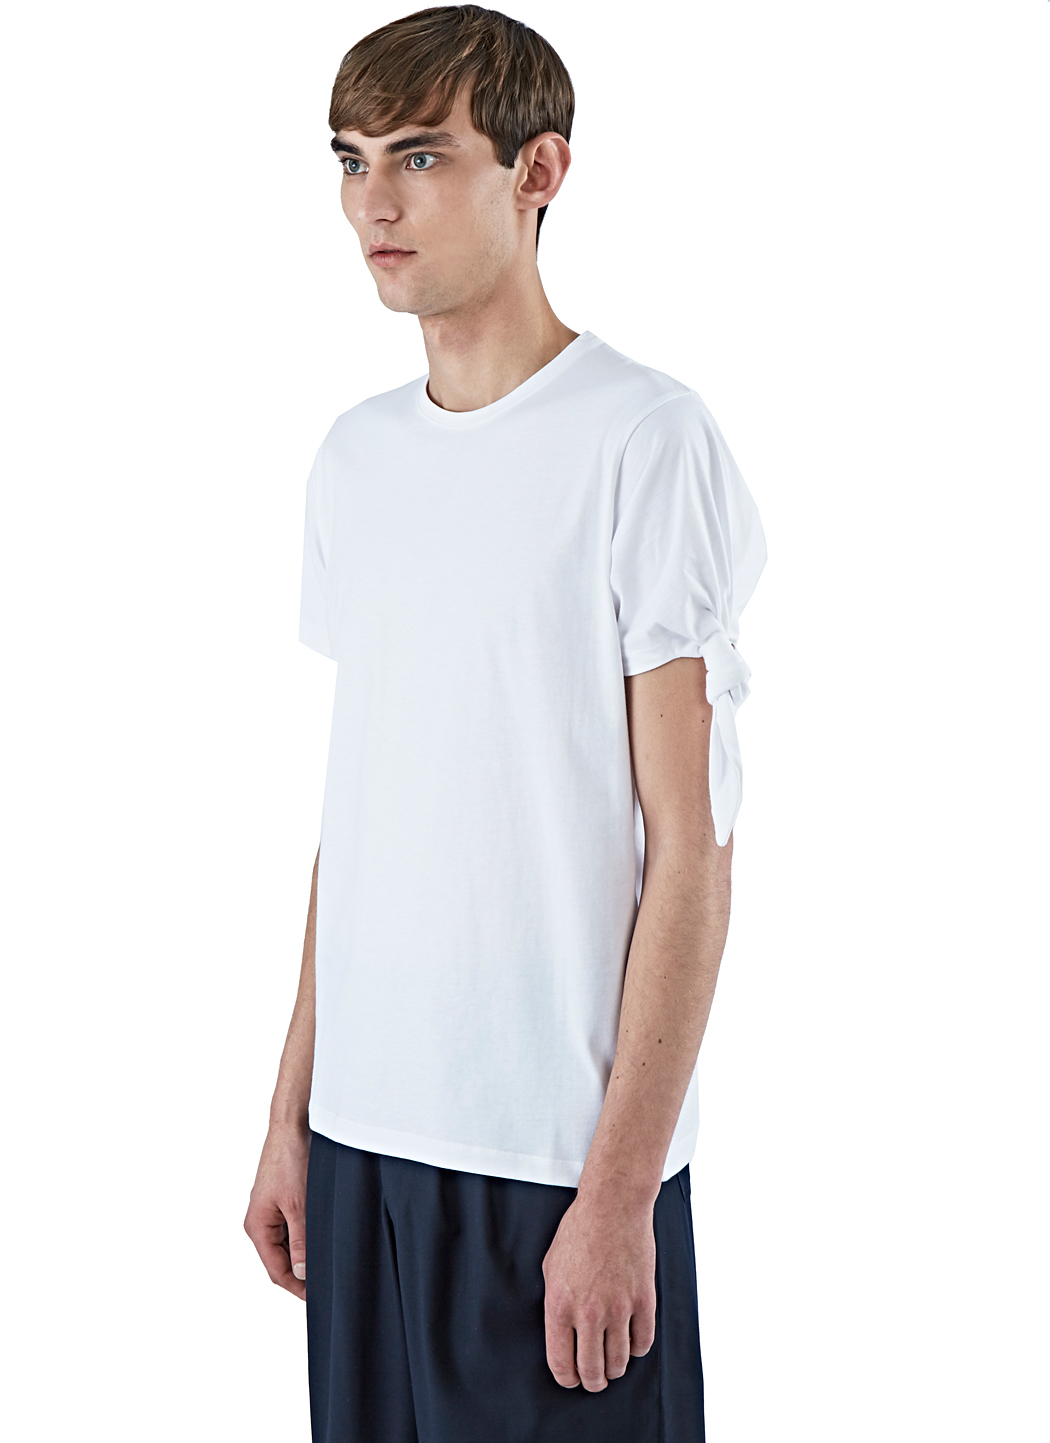 single knot T-shirt - White J.W.Anderson Cheap Sale Latest Collections Sale Best Outlet Store Sale Online Lowest Price Online OvJwMZAGq